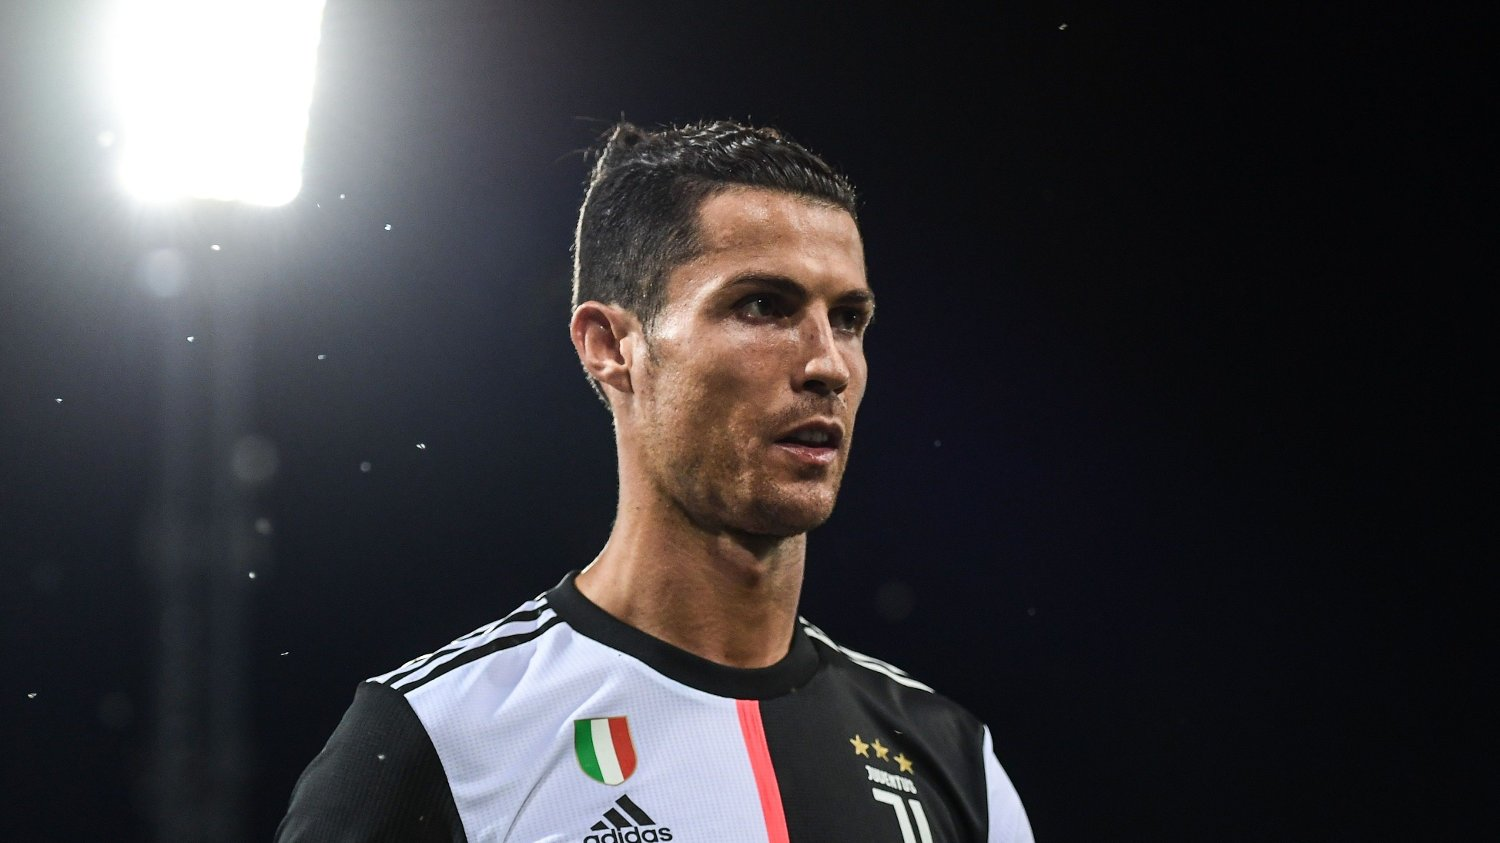 Juventus' Portuguese forward Cristiano Ronaldo leaves the pitch at the end of the Italian Serie A football match Bologna vs Juventus on June 22, 2020 at the Renato-Dall'Ara stadium in Bologna, as the country eases its lockdown aimed at curbing the spread of the COVID-19 infection, caused by the novel coronavirus.